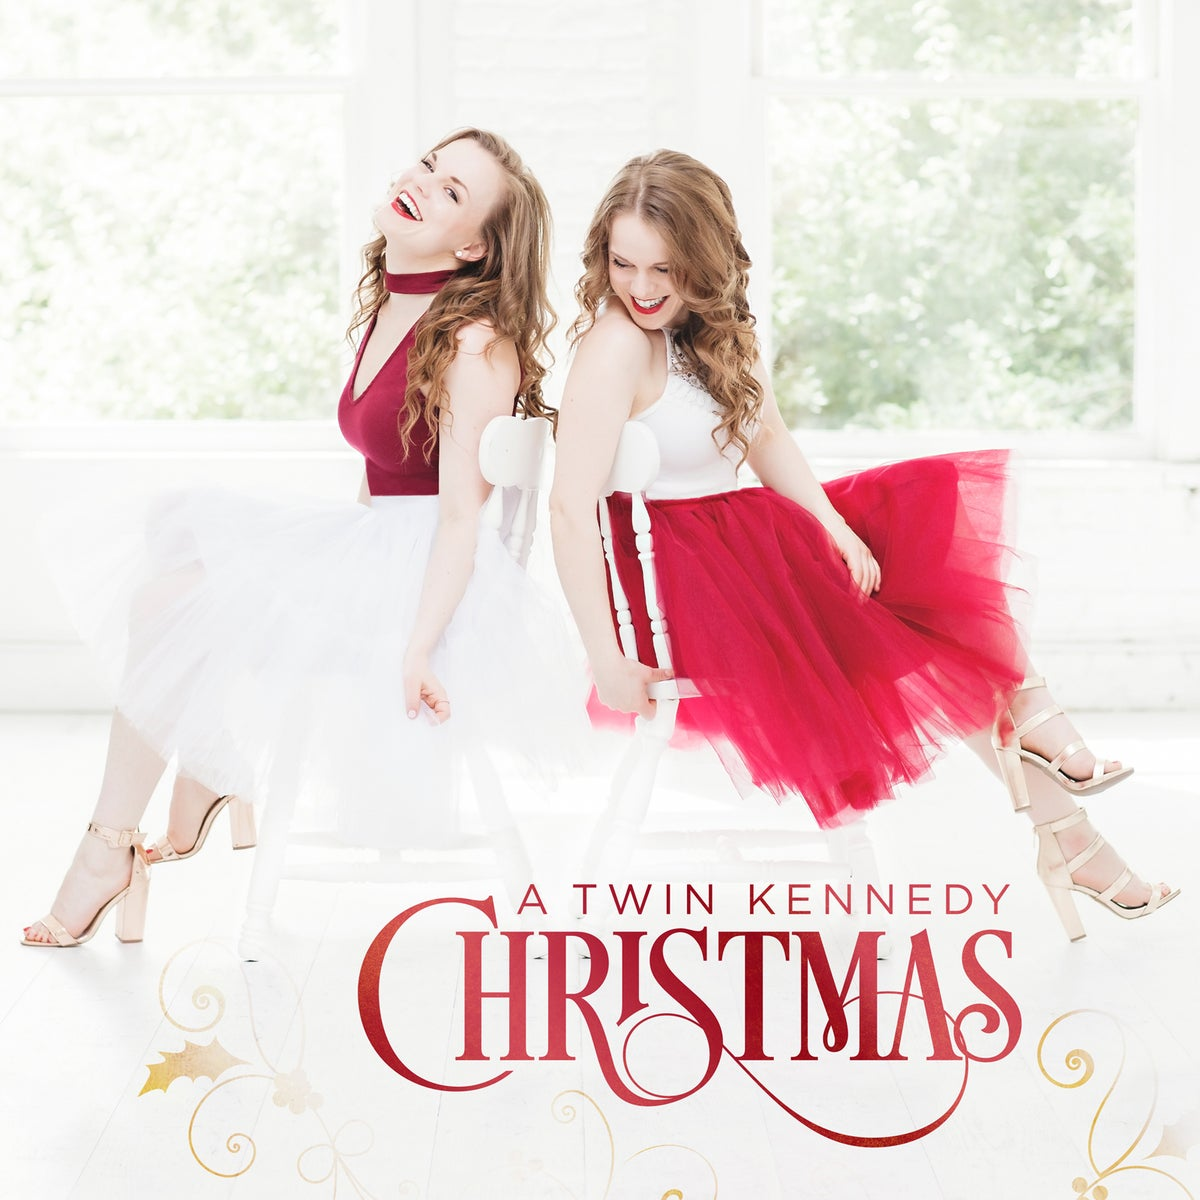 A Twin Kennedy Christmas CD